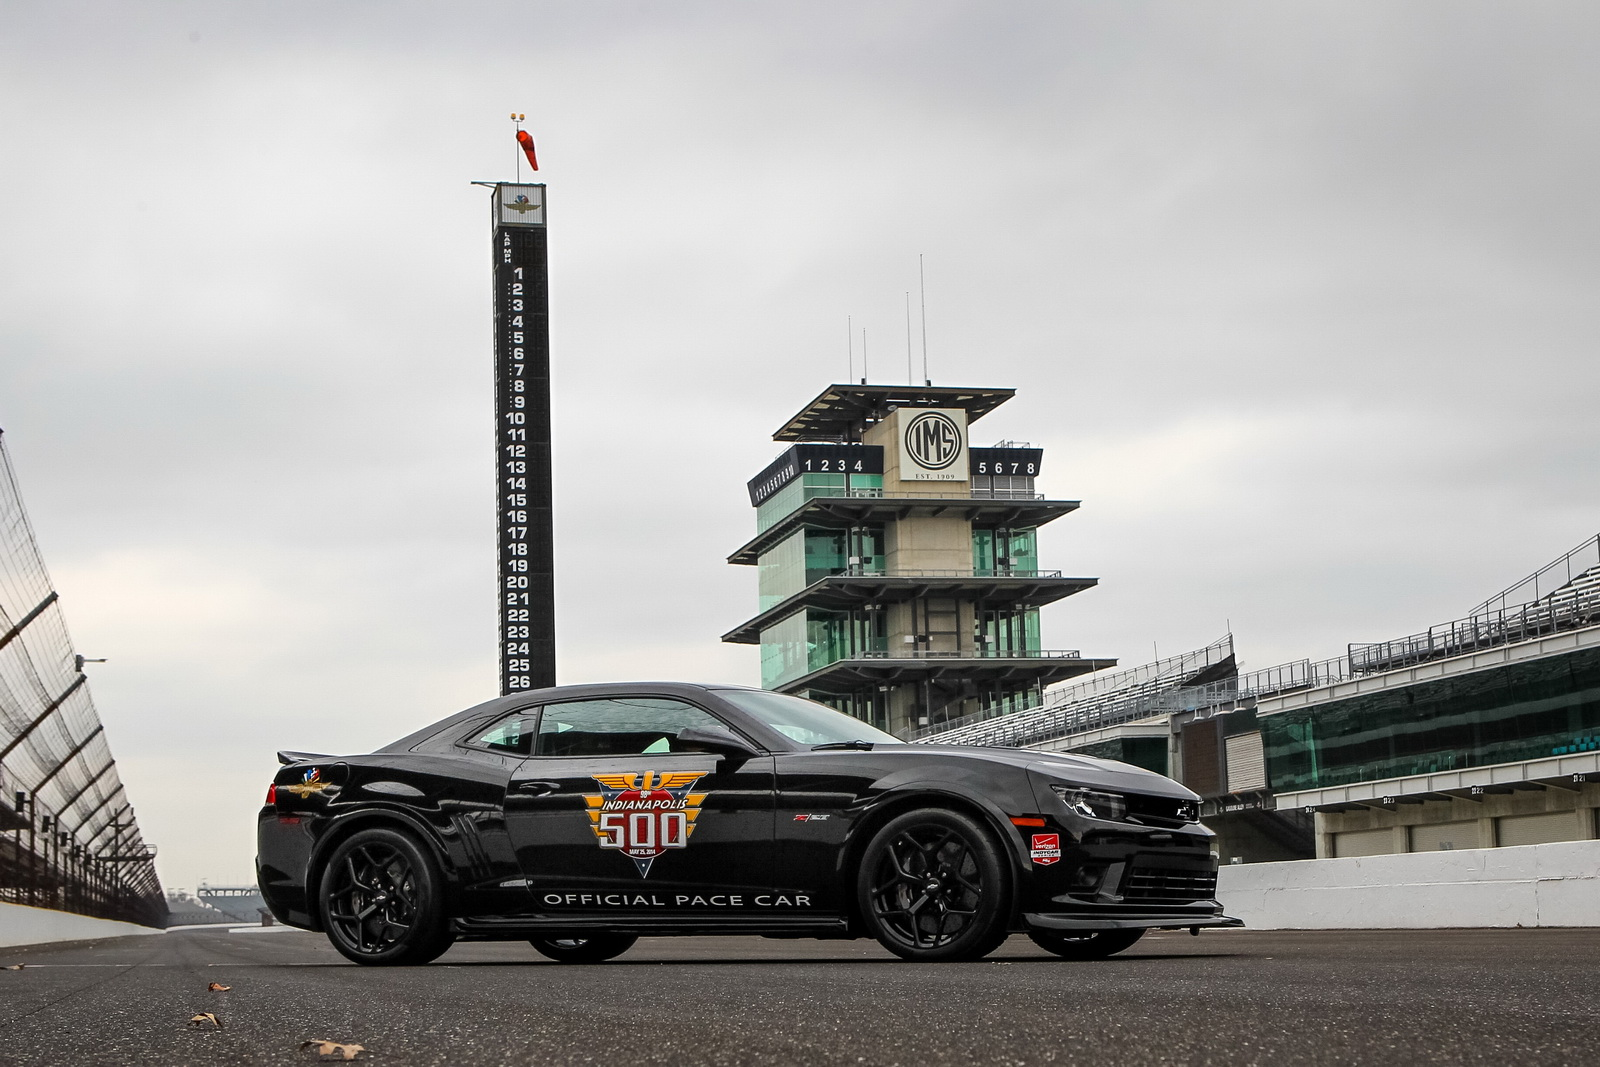 Chevrolet Racing introduces the 2014 Chevrolet Camaro Z/28 Indianapolis 500 pace car Tuesday, March 25, 2014. Three-time Indianapolis 500 winner Dario Franchitti will drive the Camaro Z/28 to pace the 98th running of the race on May 25. It??s the eighth time a Camaro has been the pace car, starting in 1967 ? and the 25th time a Chevrolet has paced the race. The 2014 Camaro Z/28 is the most track-capable model in its history, building on the legacy of the original SCCA Trans Am-series contender introduced in 1967. (Photo Courtesy of IMS Photography for Chevy Racing)